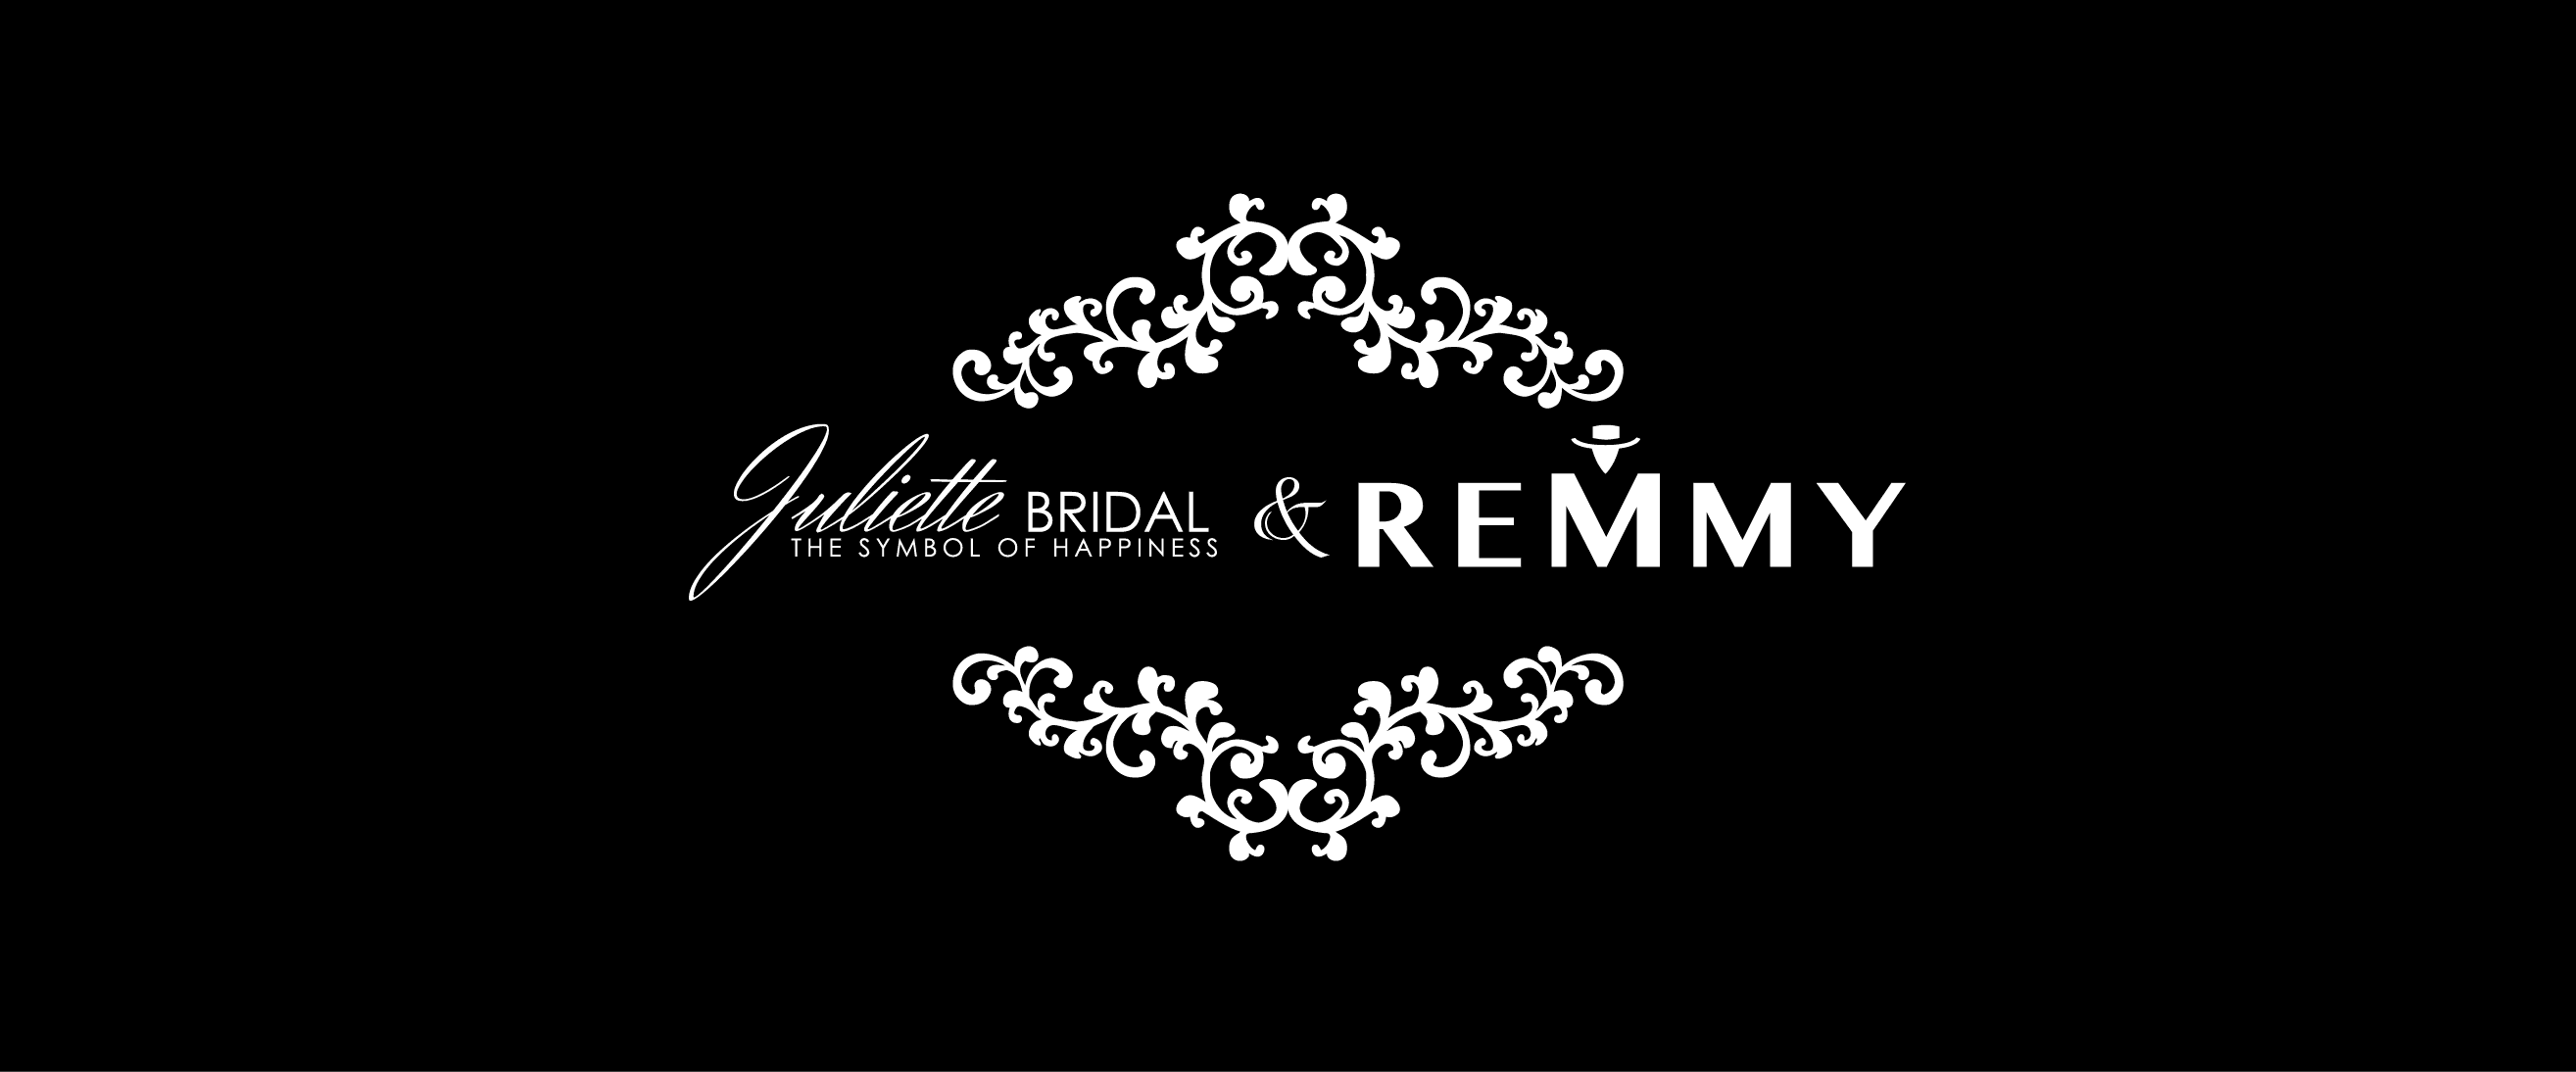 Juliette Bridal & Remmy